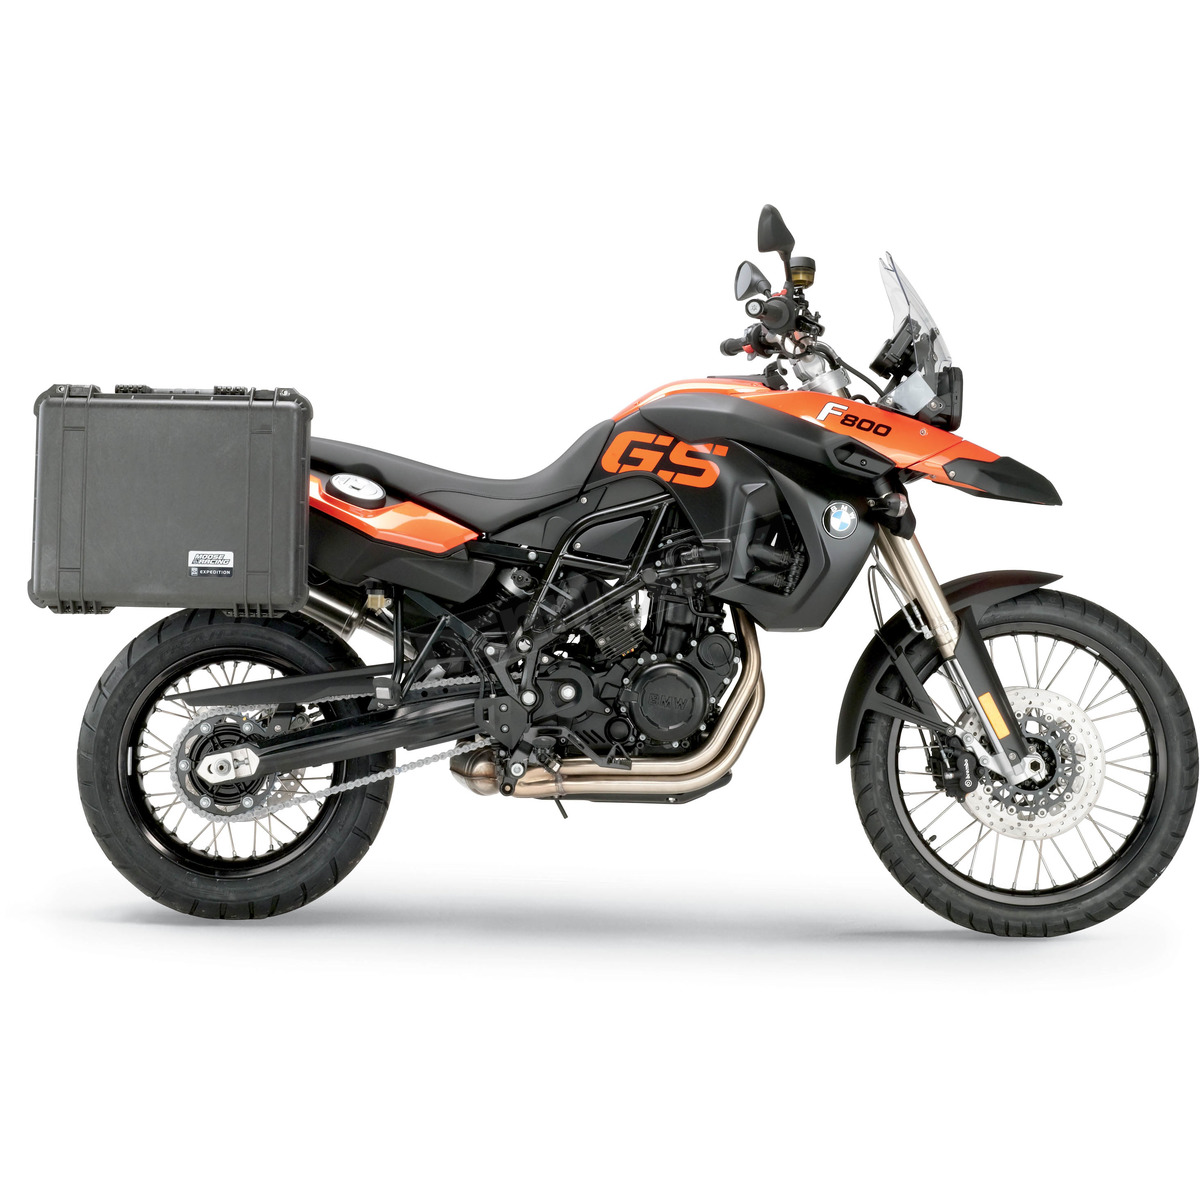 Moose Expedition Luggage Rack System 1510 0177 Dirt Bike